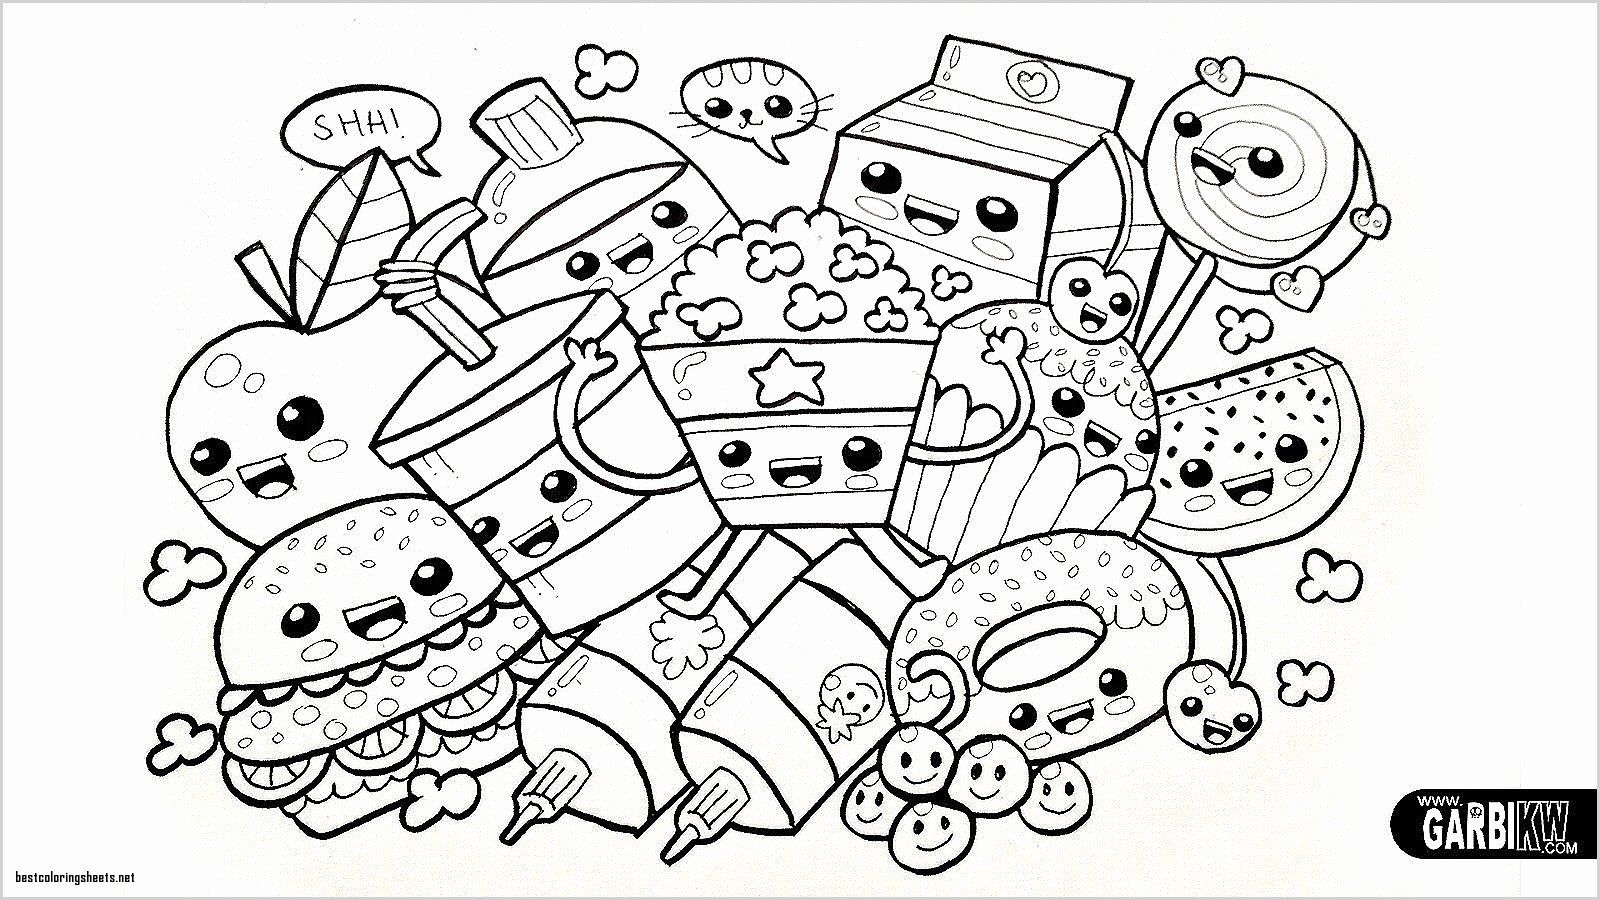 - Christmas Shopkins Coloring Pages Cute Coloring Pages, Animal